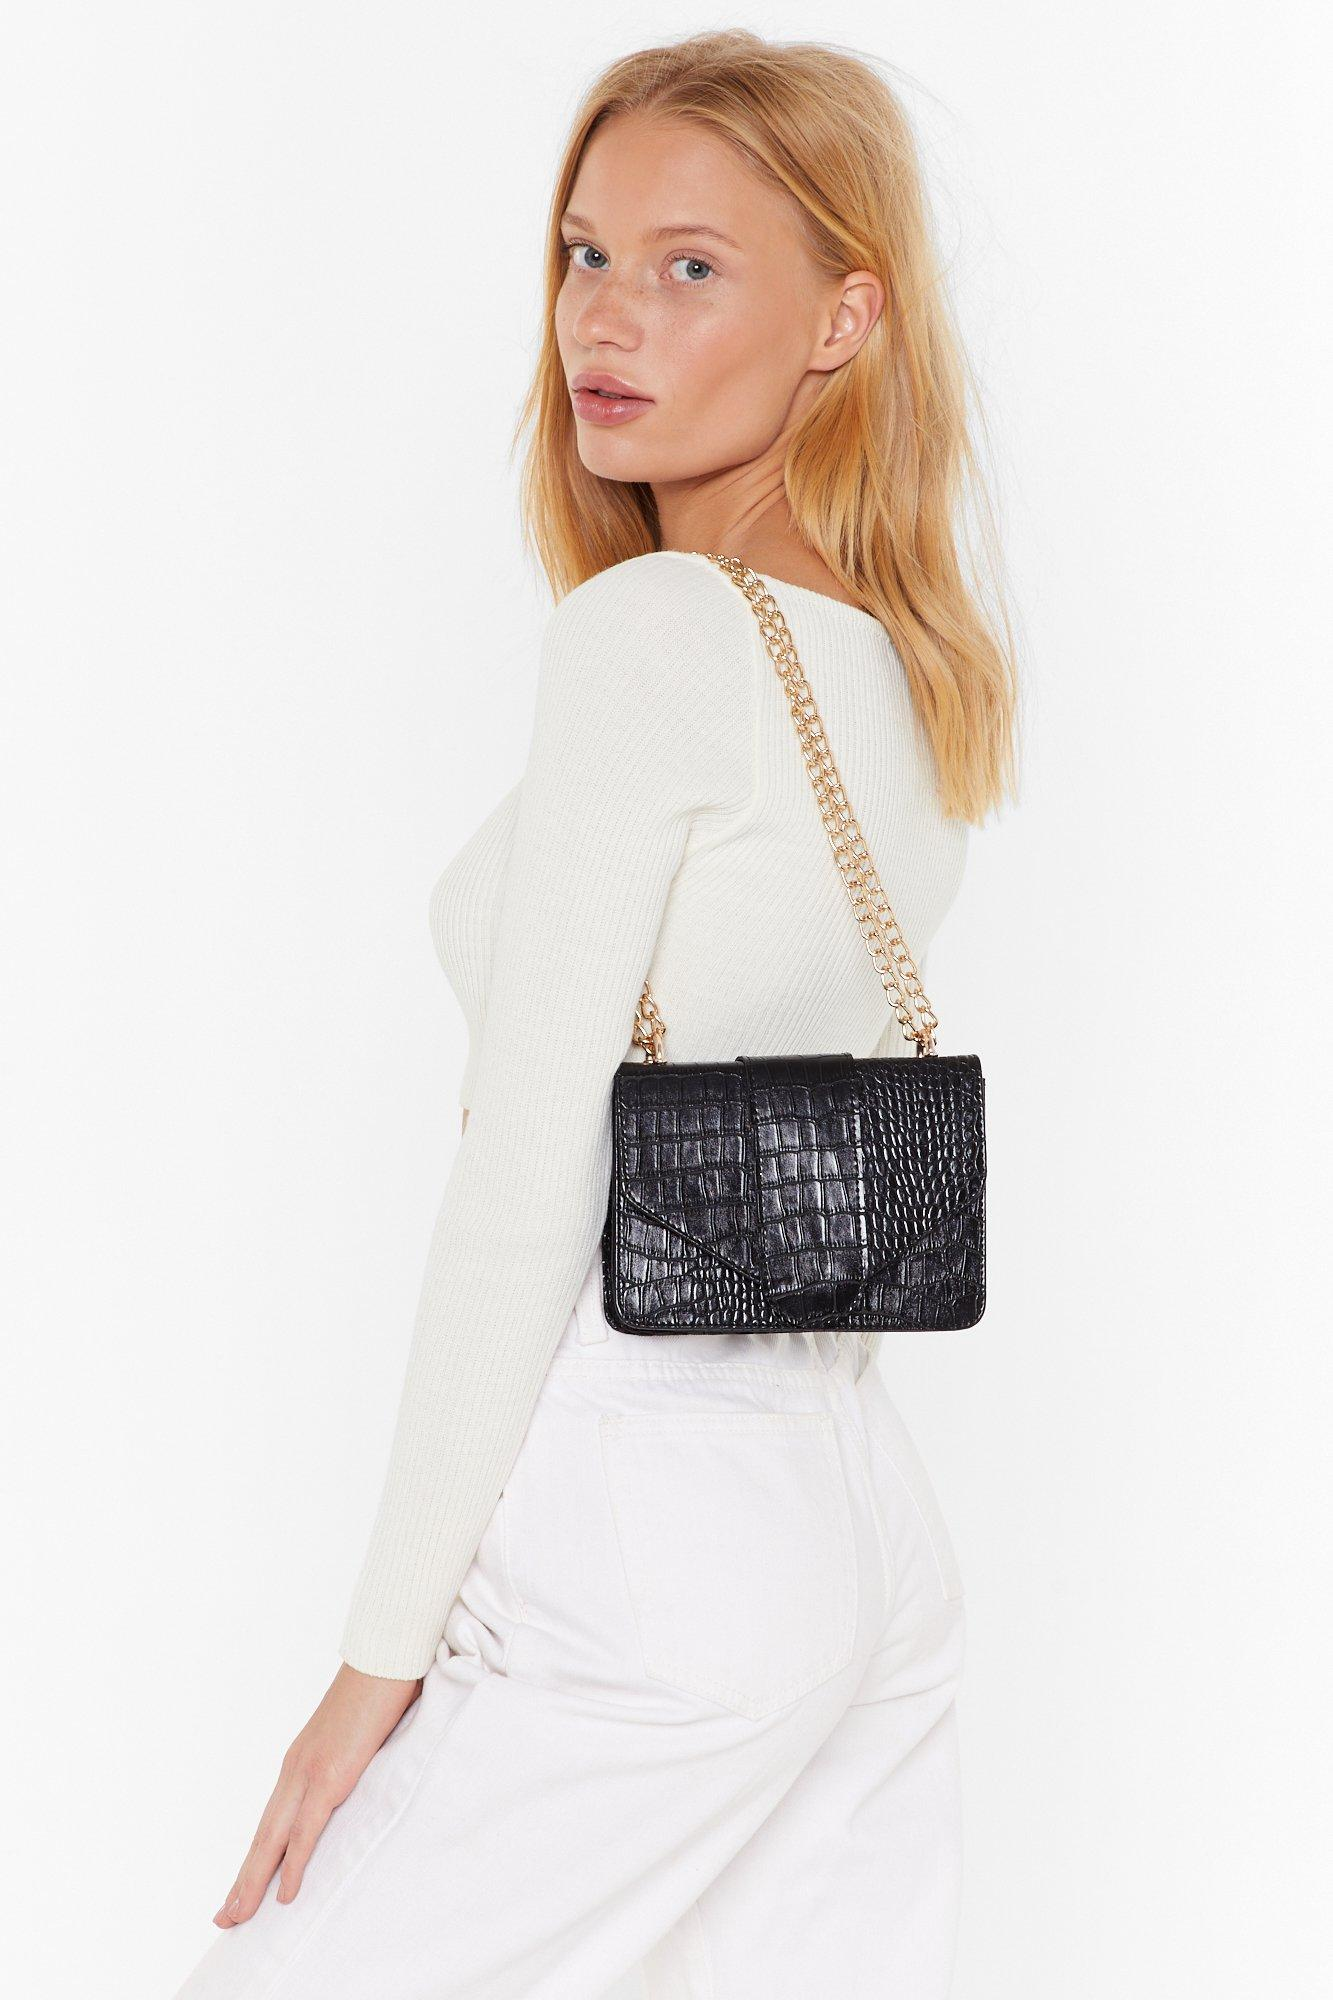 Want In The Shadows Croc Shoulder Bag by Nasty Gal